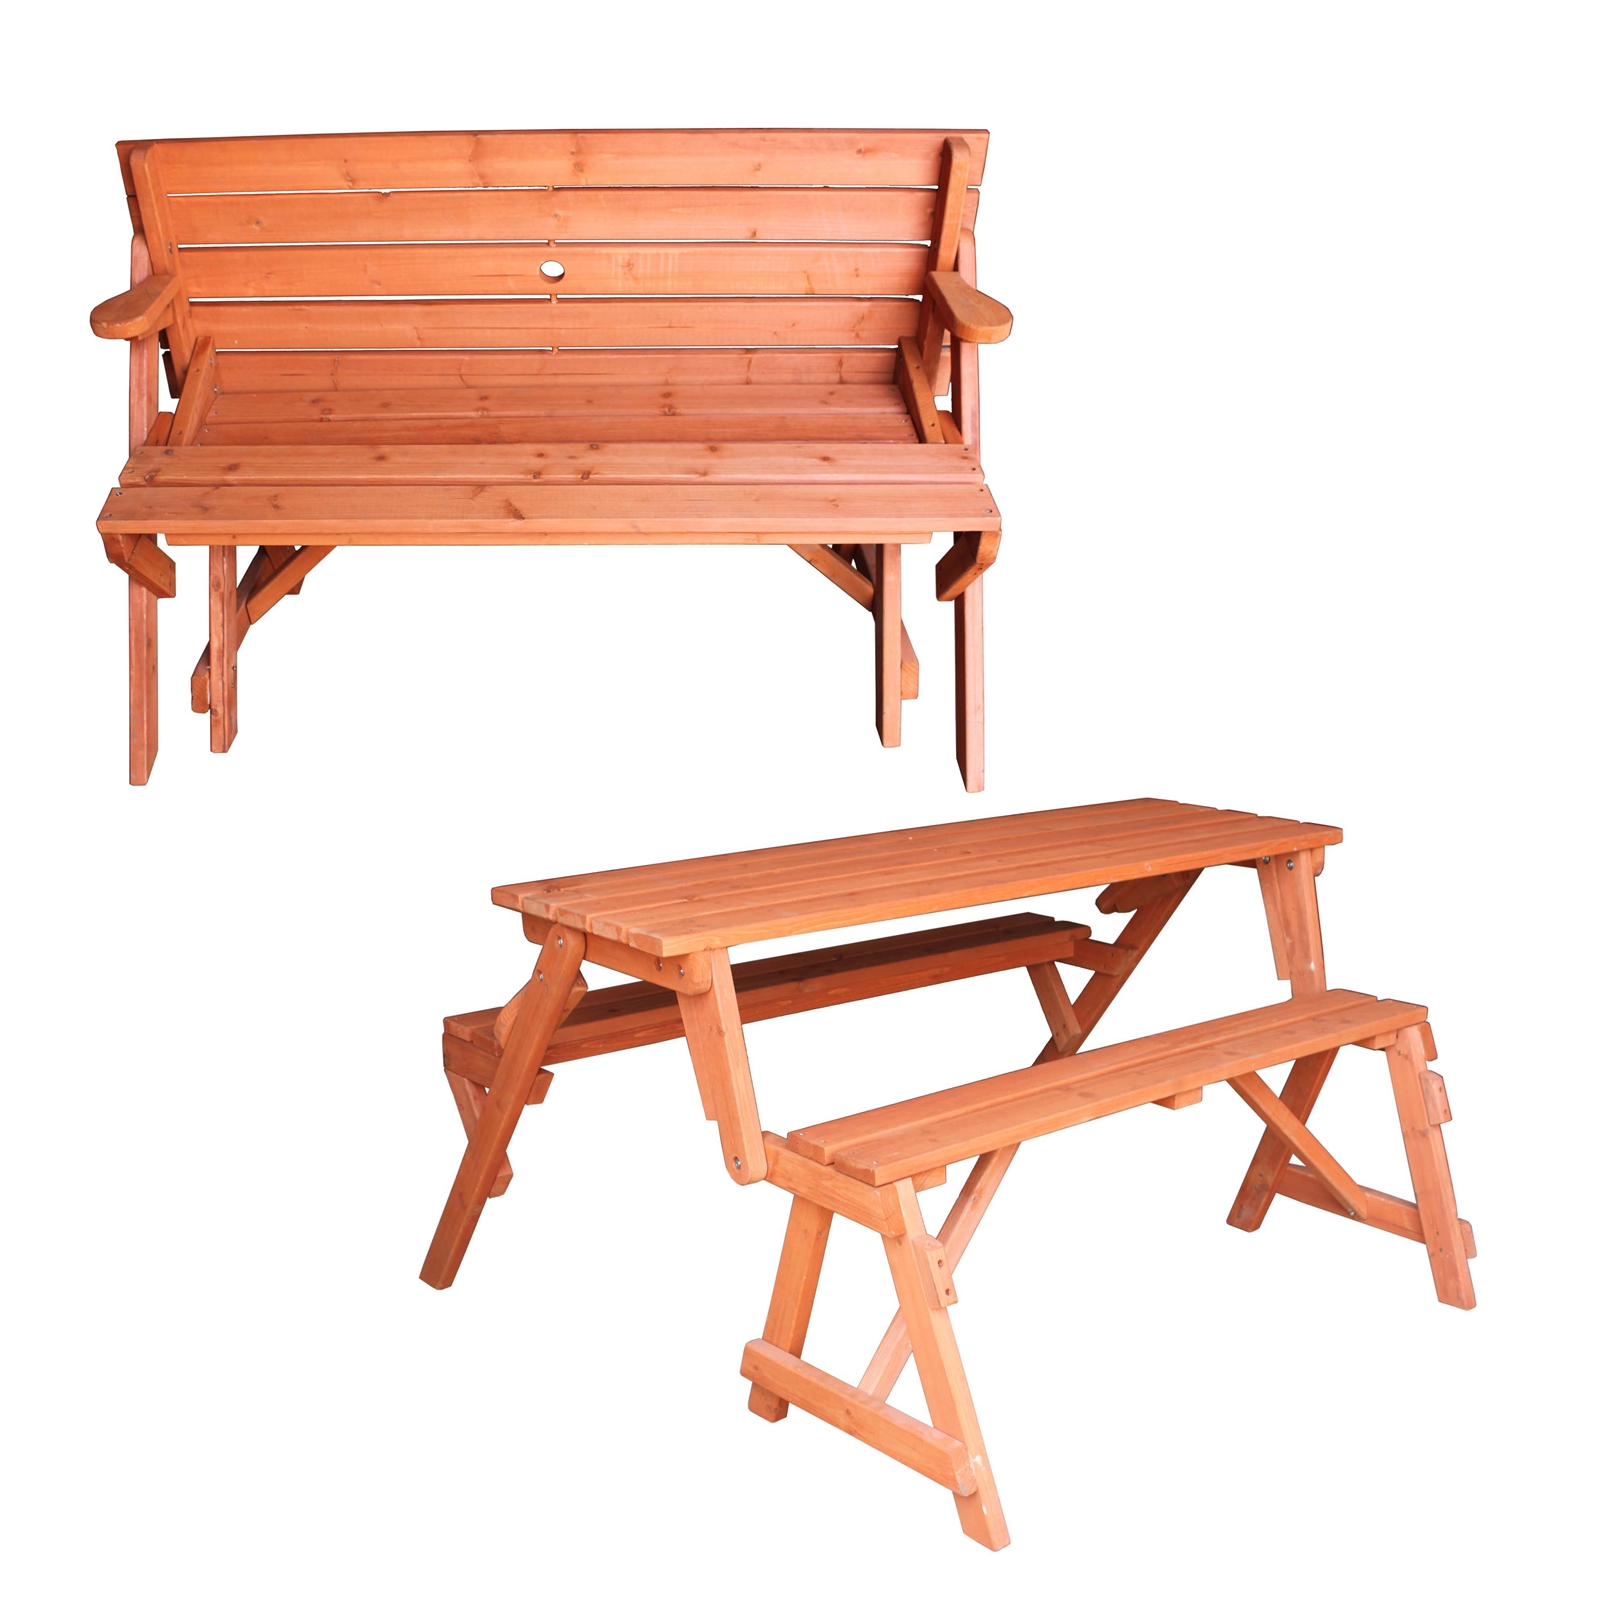 FoxHunter Garden Wooden Folding Picnic Seat Table Bench 2 In 1 Outdoor FHTB01